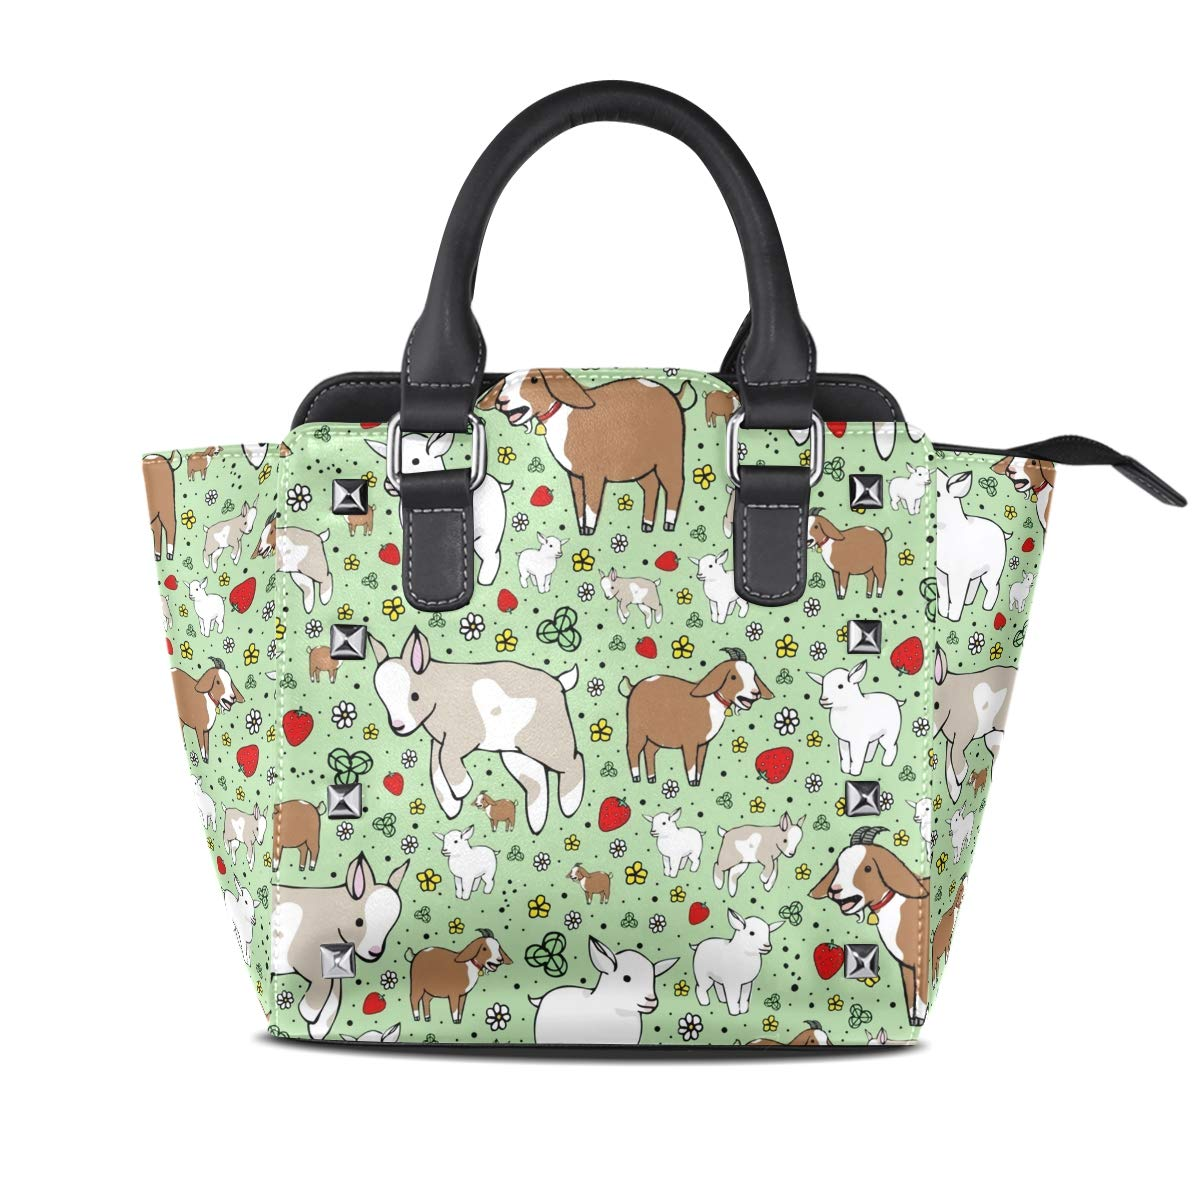 Design4 Handbag Sexy Leopard Print Genuine Leather Tote Rivet Bag Shoulder Strap Top Handle Women